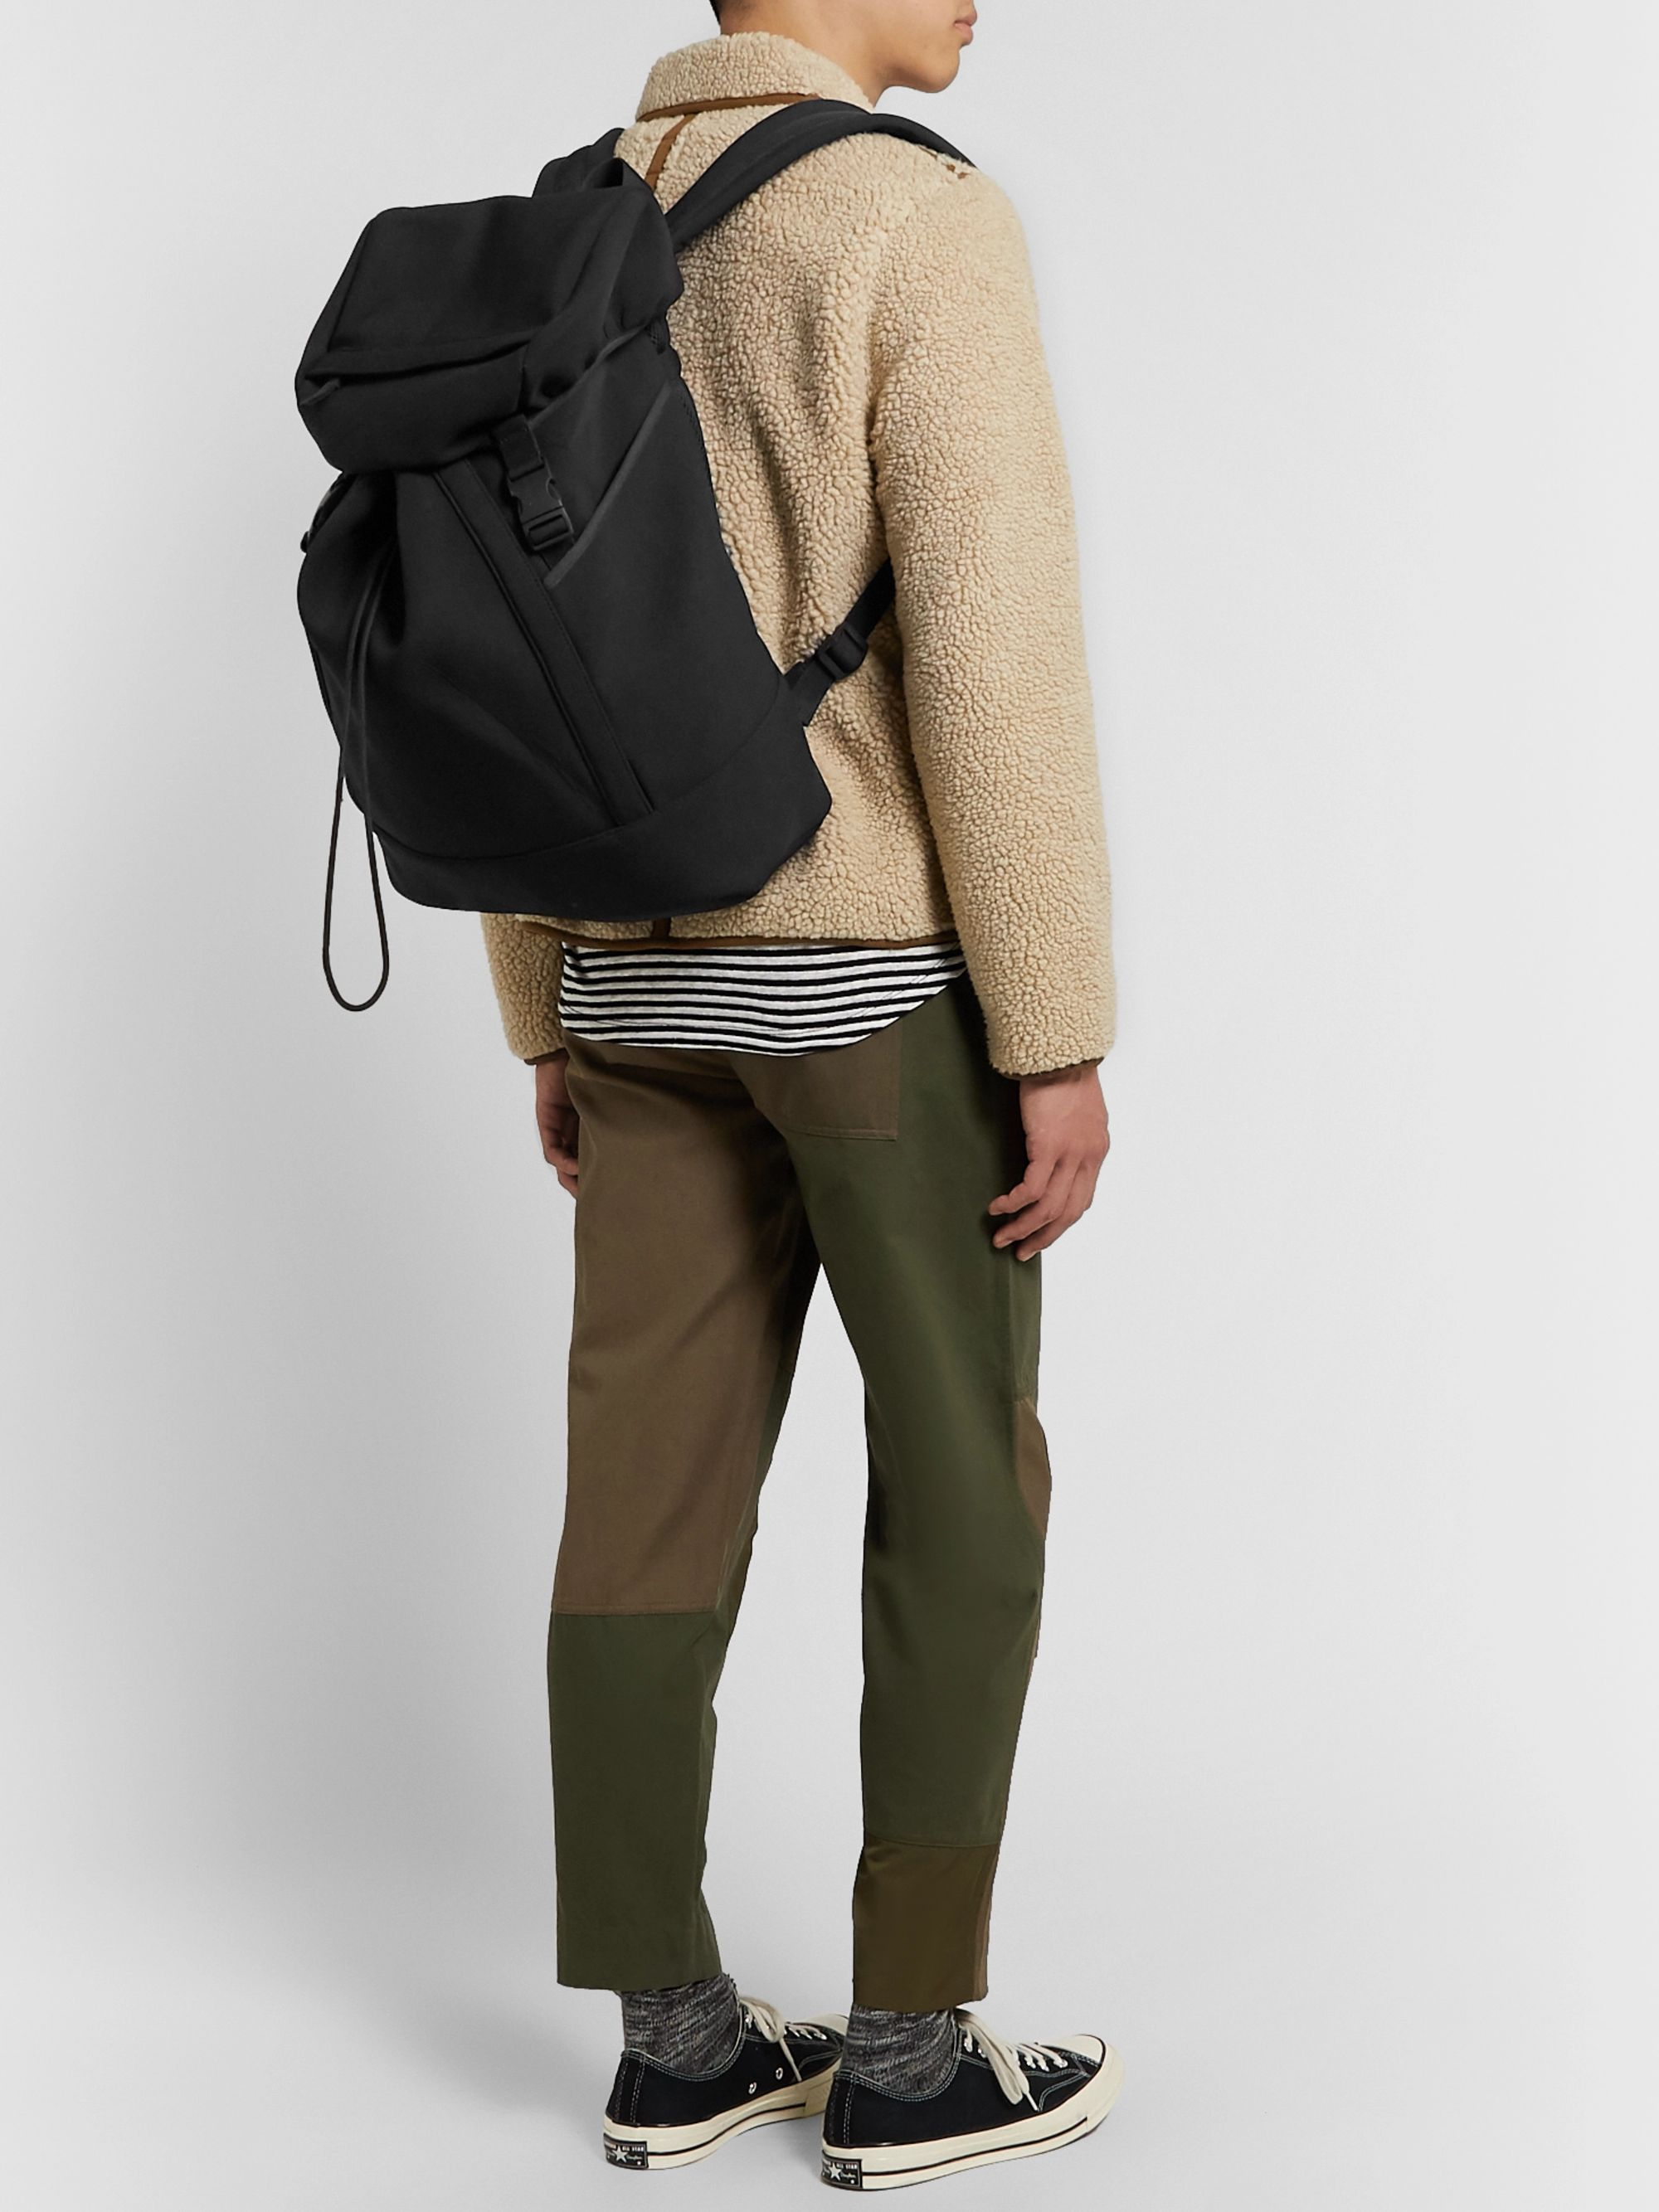 James Perse Sequoia Mountain Neoprene Backpack